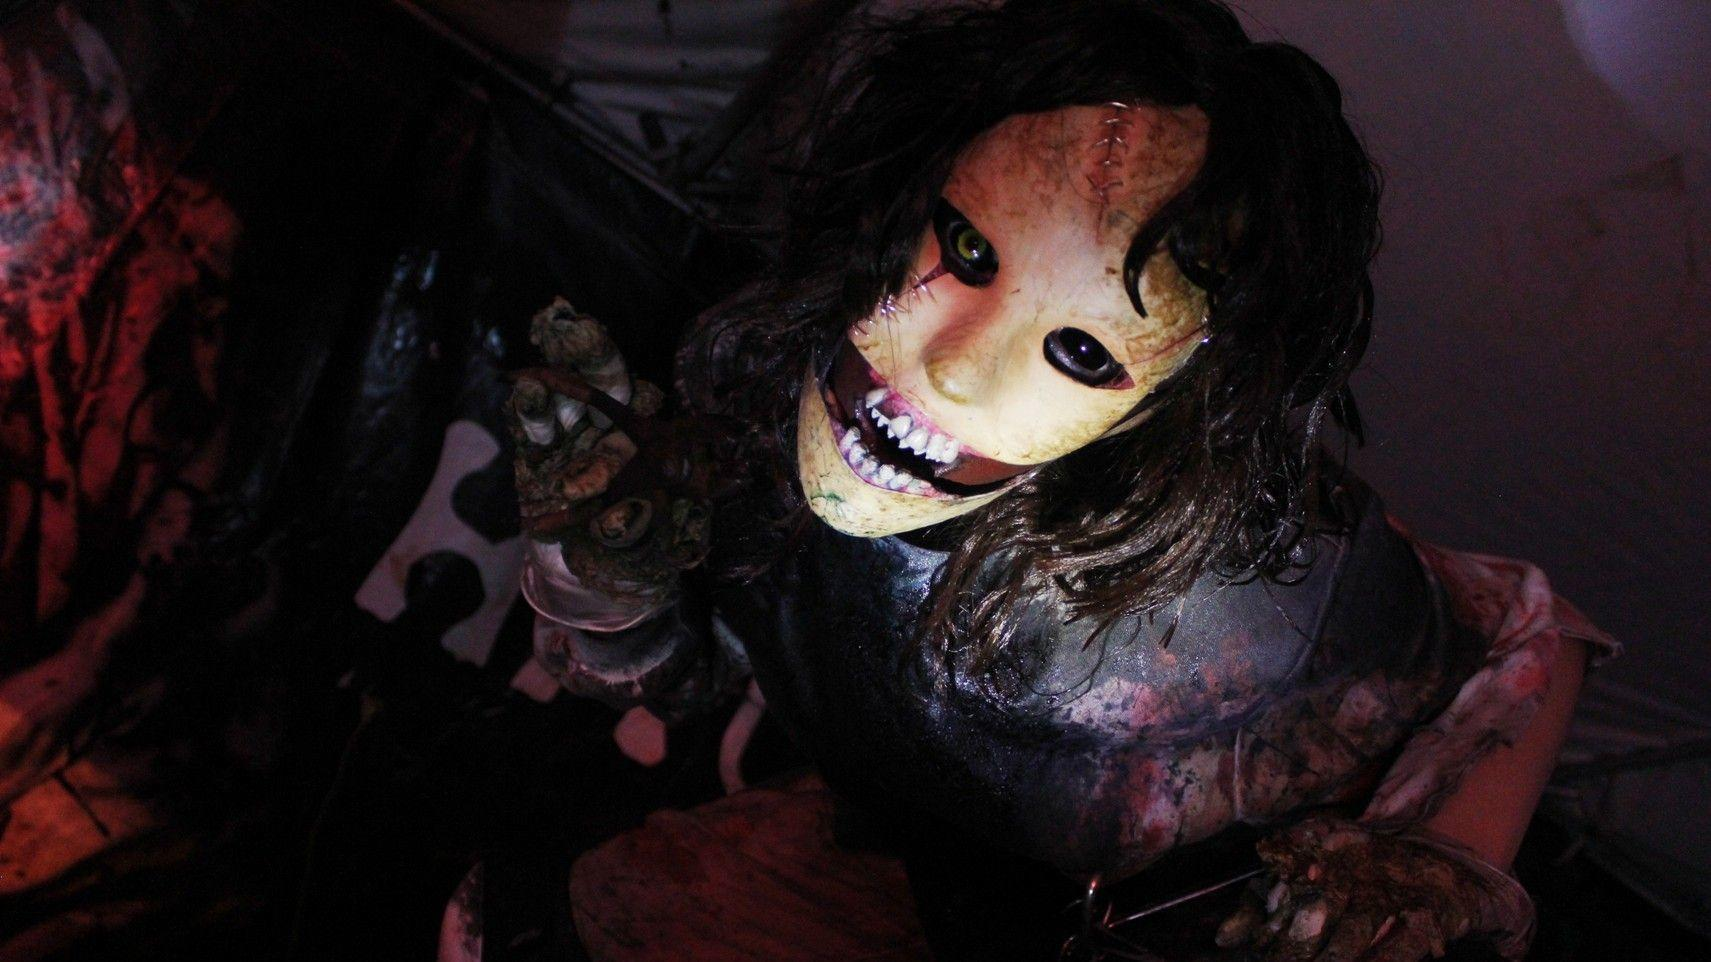 our experience at the haunted house Extreme physical contact haunted our experience at the haunted house house timothy haskell and psycho clan find the best haunted house in cleveland.